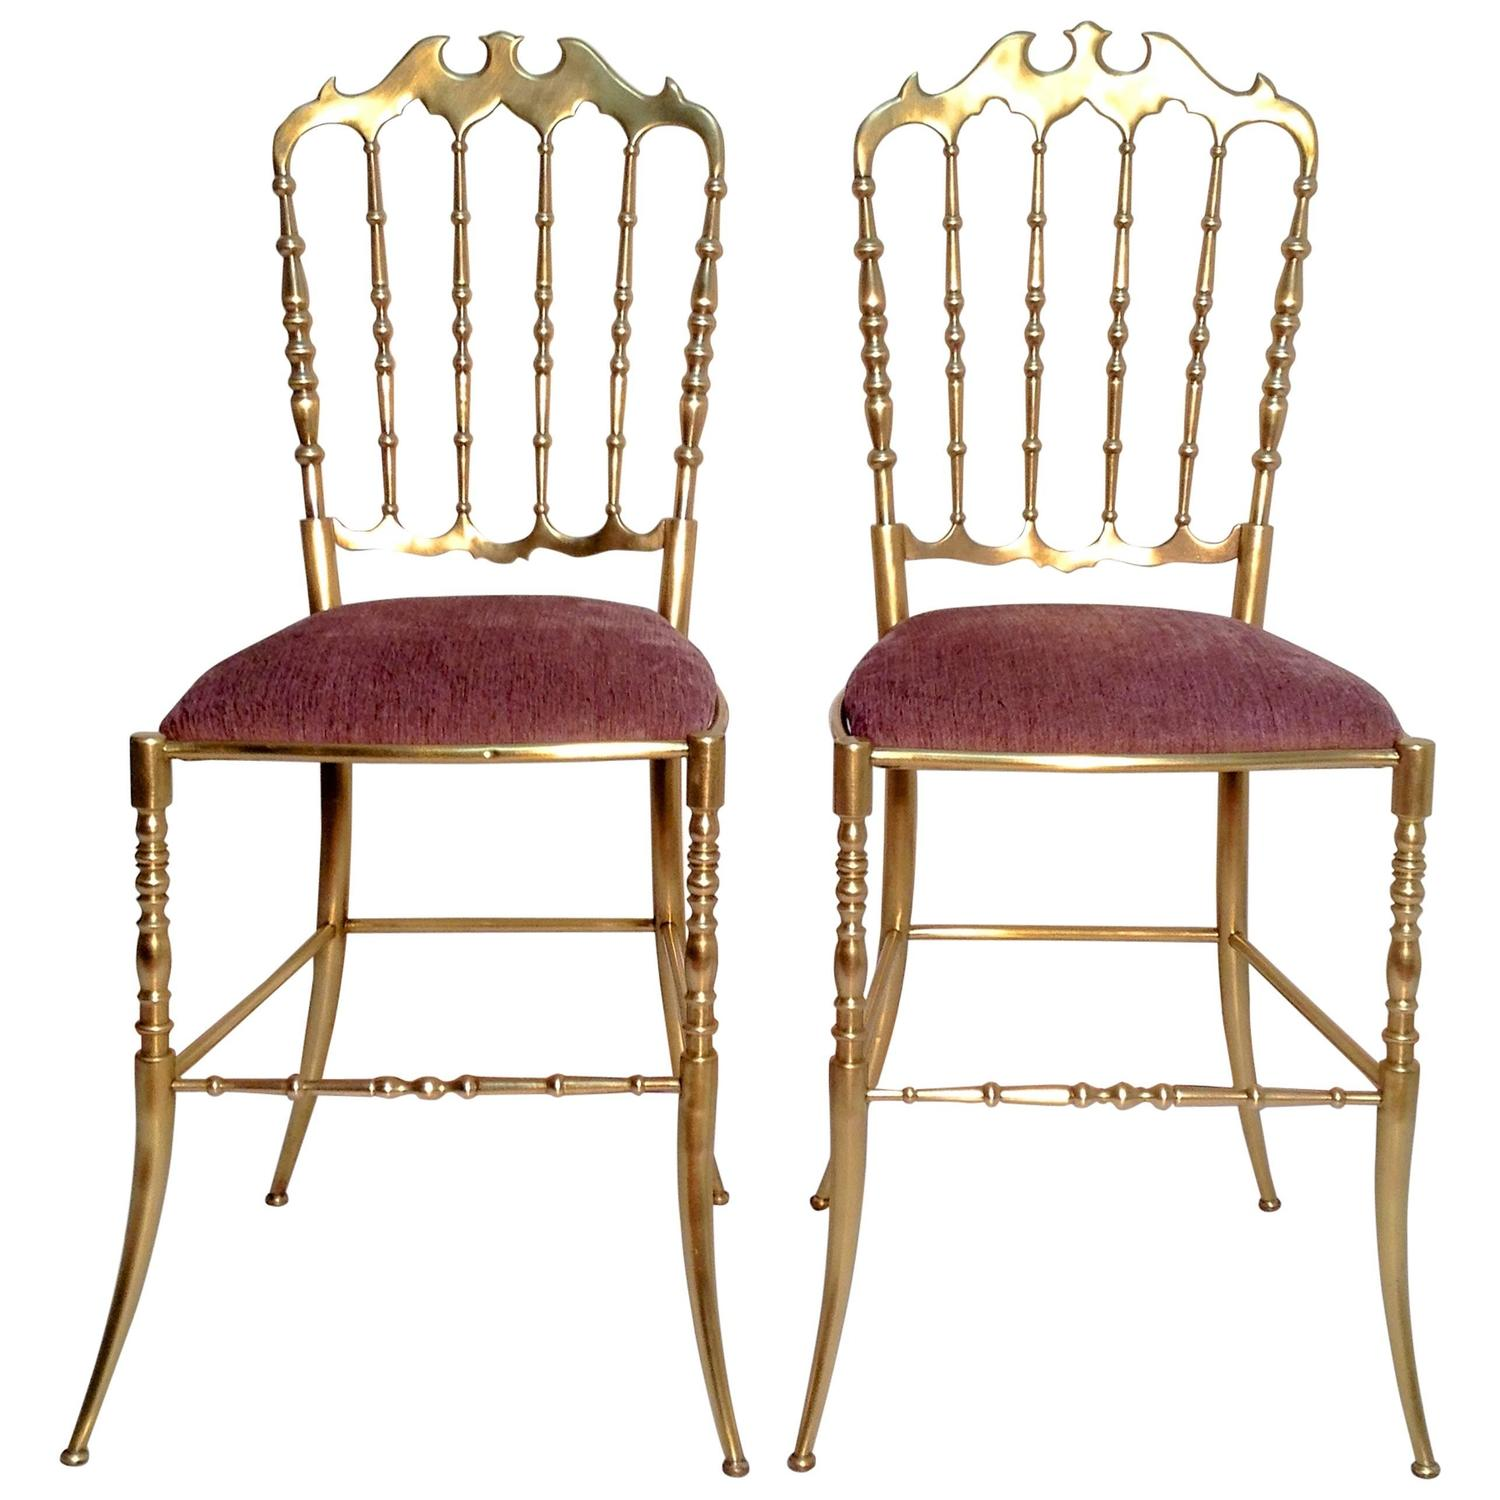 A Pair of Mid Century Polished Brass Chiavari Chairs Italy at 1stdibs